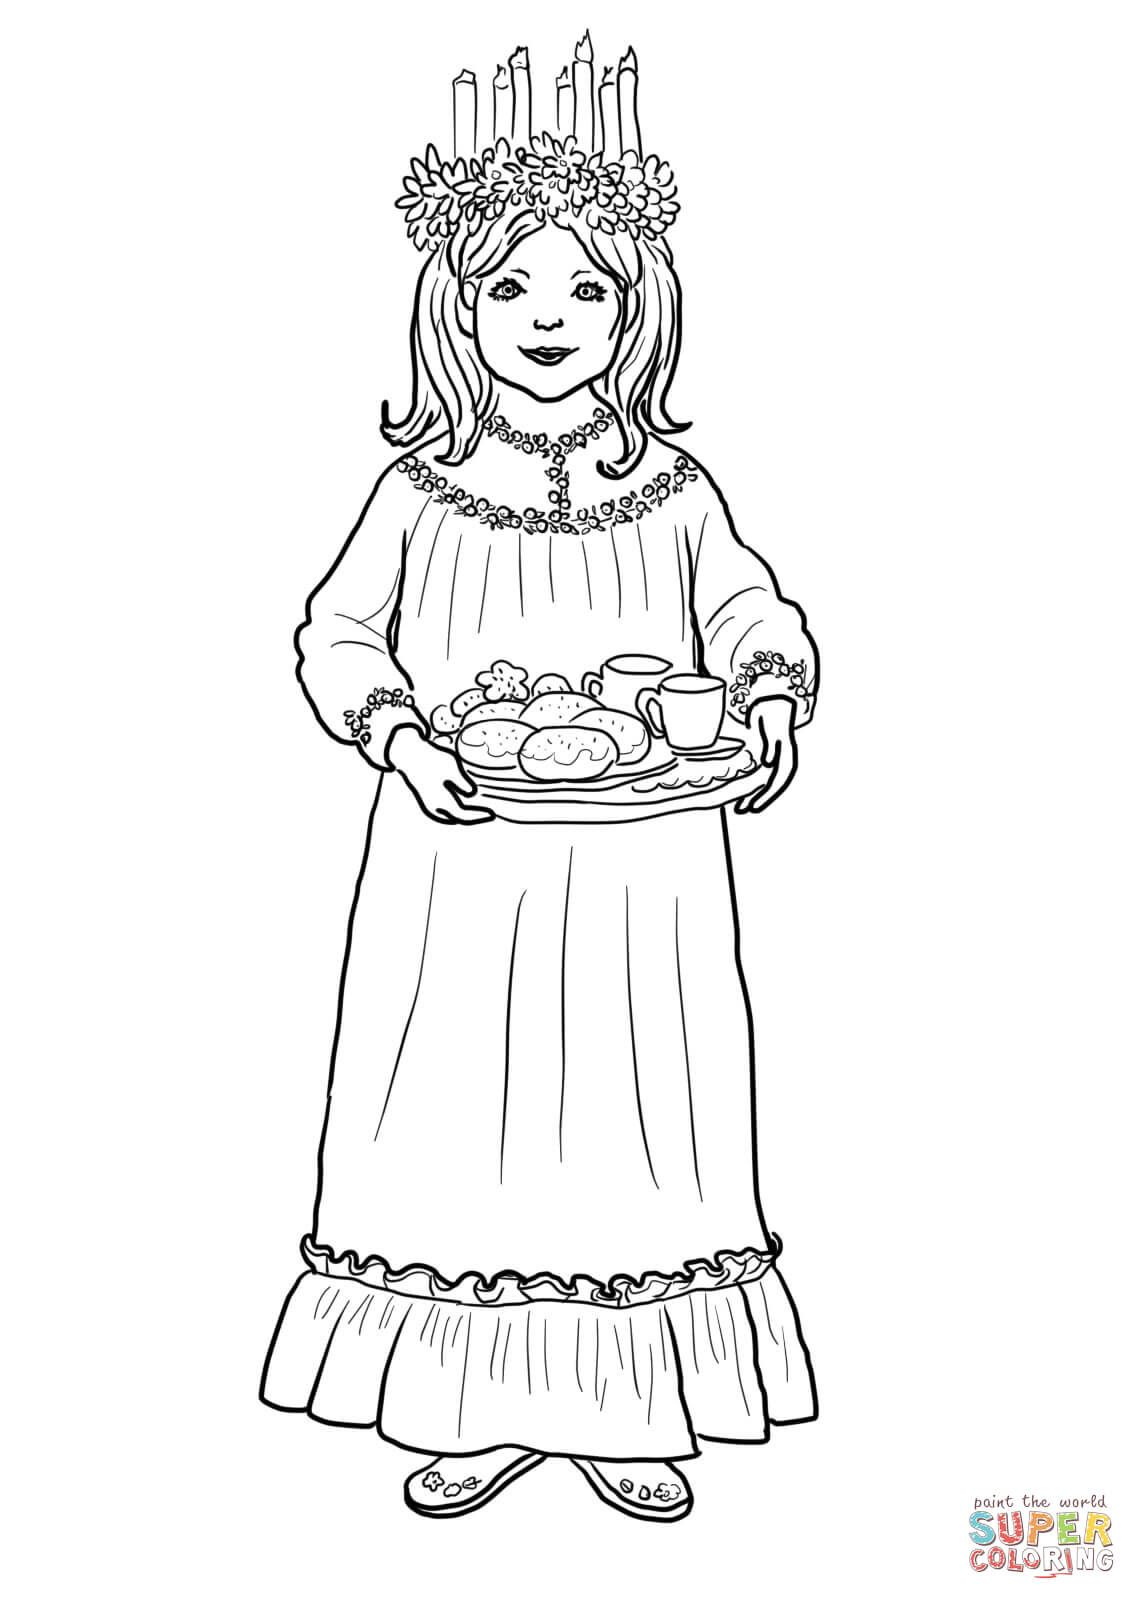 Saint Lucy Day Coloring Page From Norway Category Select From 28148 Printable Crafts Of Cartoons Nature Animals Bi St Lucia Day Sankta Lucia Coloring Pages